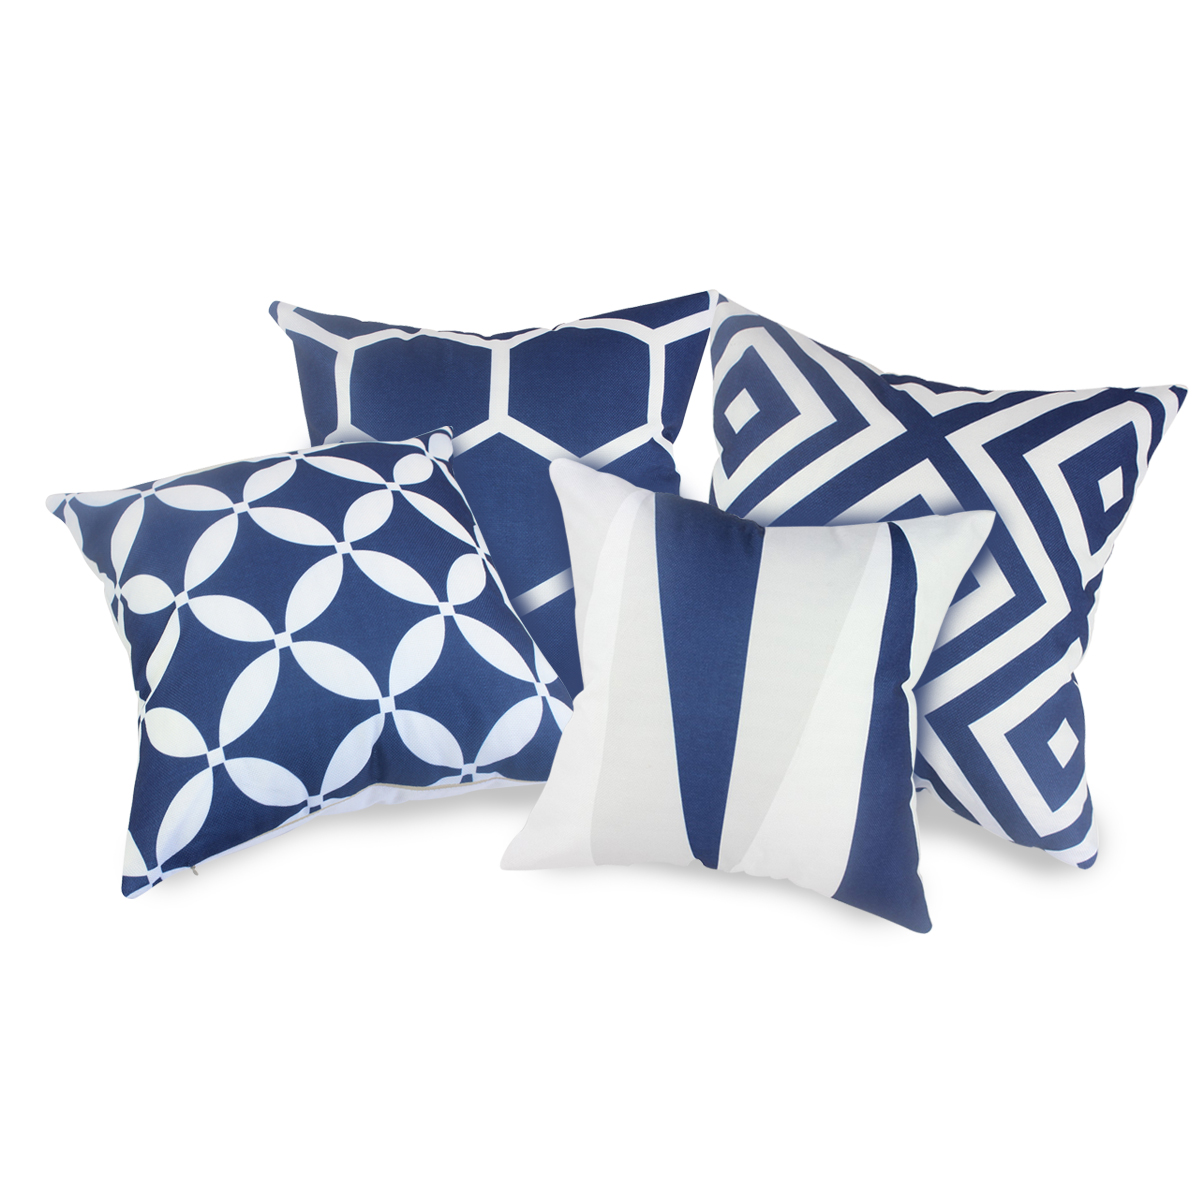 pillow covers for living room with corner fireplace design ideas fabricmcc set of 4 navy blue and white geometric decorative fashion couch throws